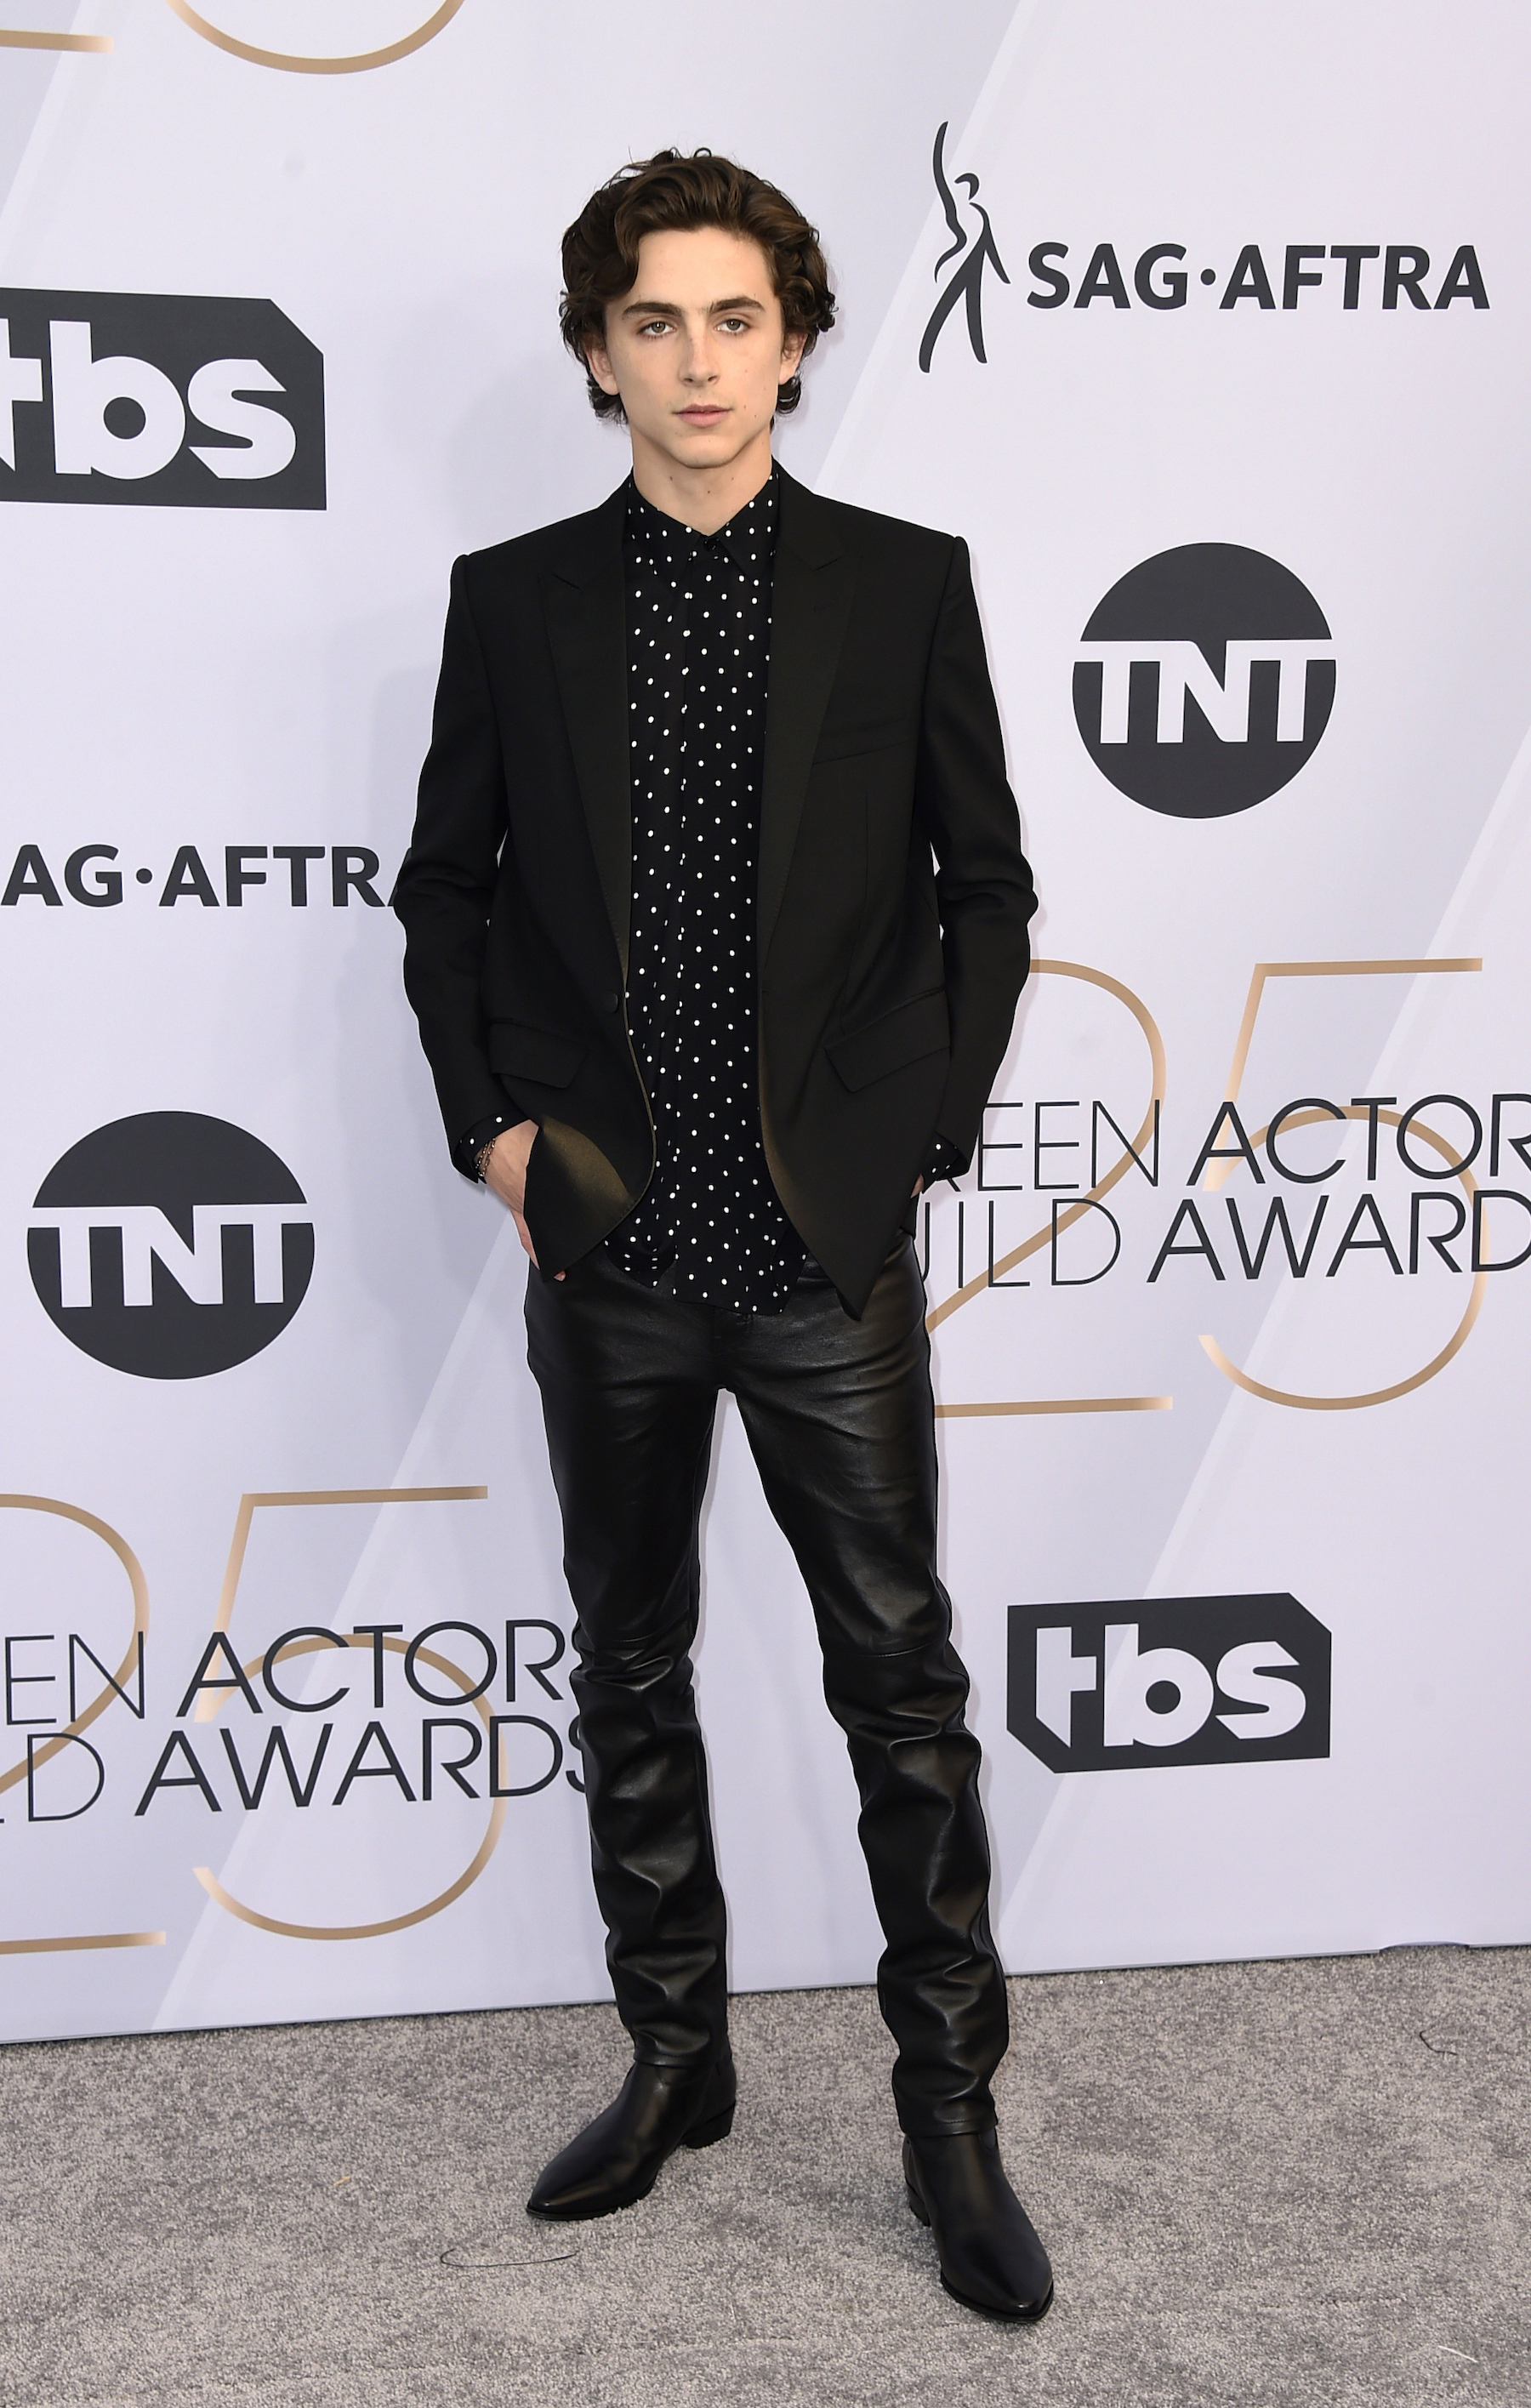 <div class='meta'><div class='origin-logo' data-origin='AP'></div><span class='caption-text' data-credit='Jordan Strauss/Invision/AP'>Timothee Chalamet arrives at the 25th annual Screen Actors Guild Awards at the Shrine Auditorium & Expo Hall on Sunday, Jan. 27, 2019, in Los Angeles.</span></div>